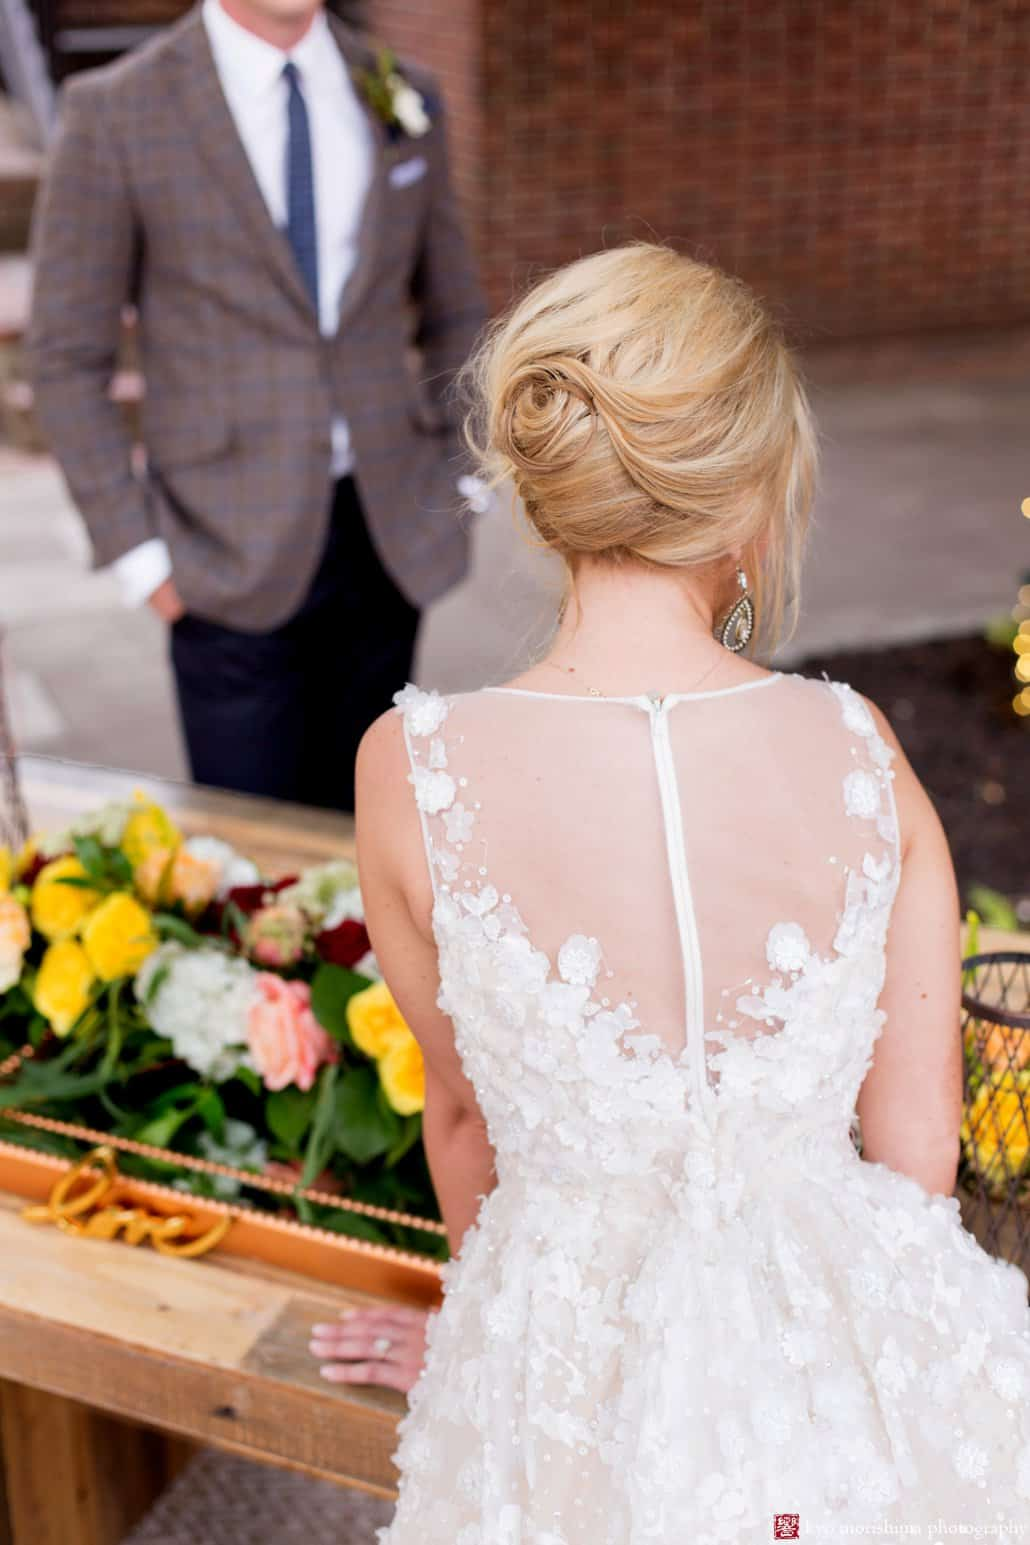 Detail of the back of BHLDN Ariane wedding gown with bride's 1960s updo wedding hair styled by Letitia Kakas, on the Nassau Inn back patio in Princeton, photographed by Kyo Morishima